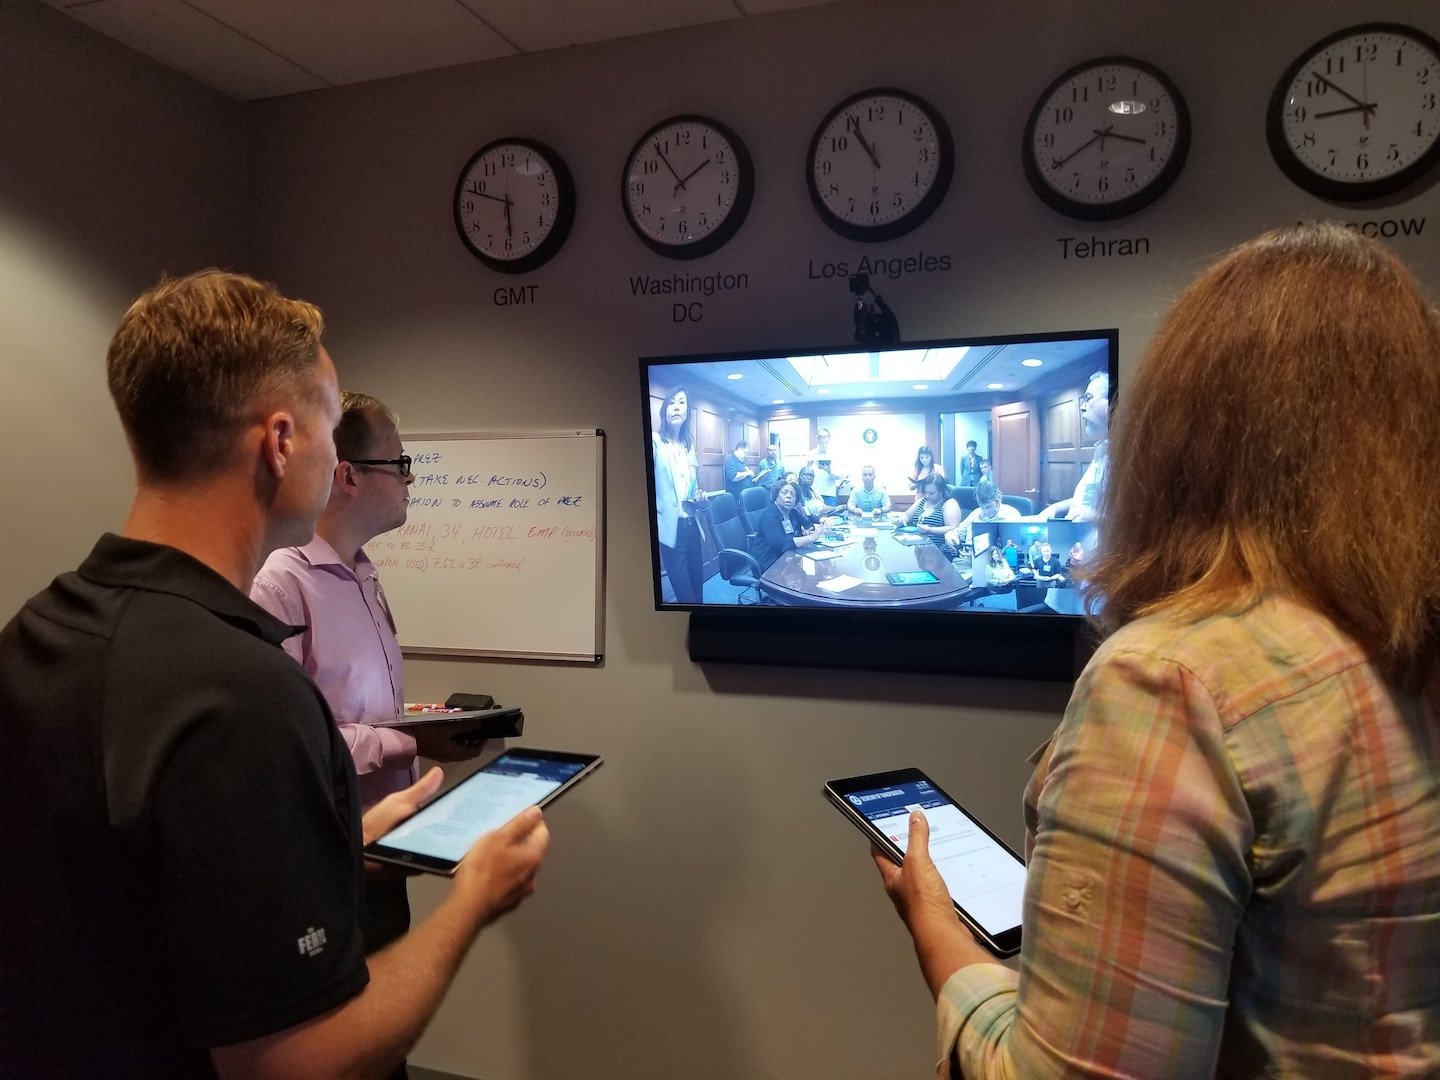 Three people stand in front of a television monitor during a teleconference